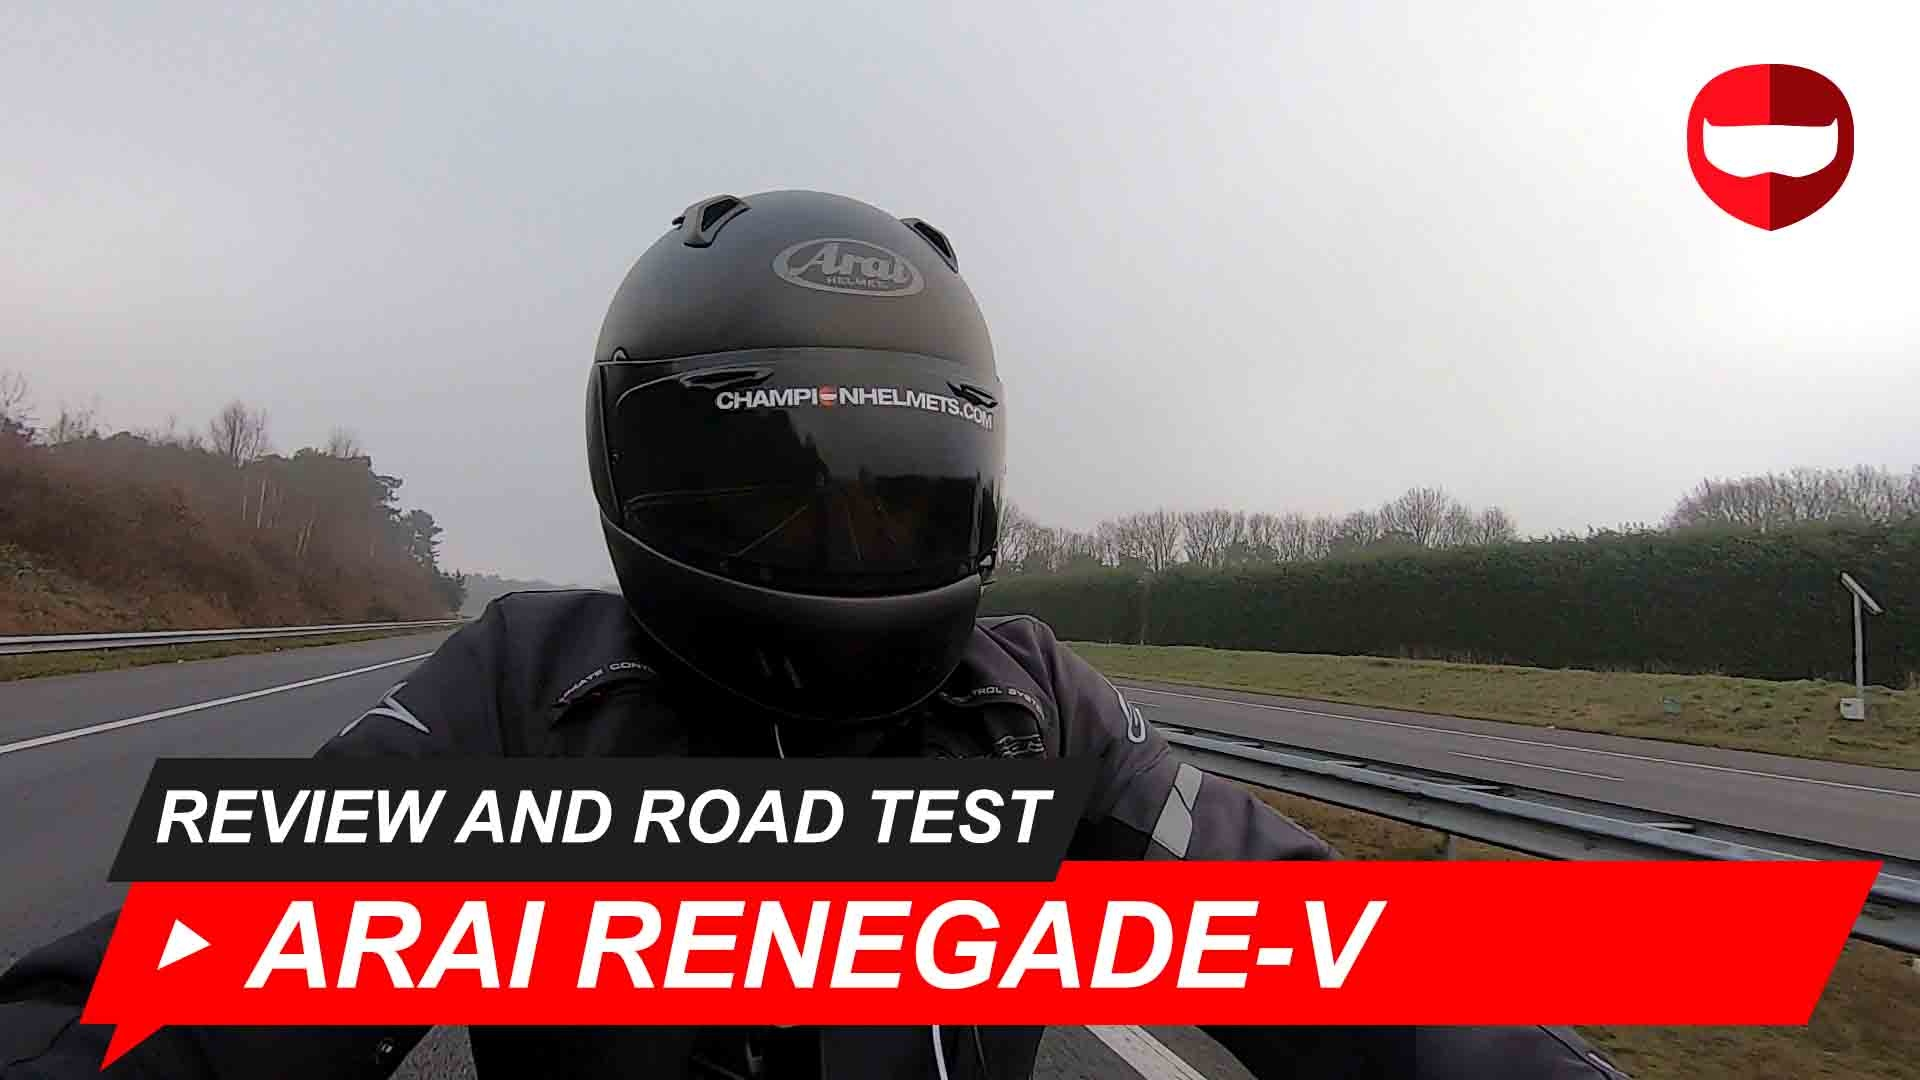 Arai Renegade-V Review and Road Test + Video